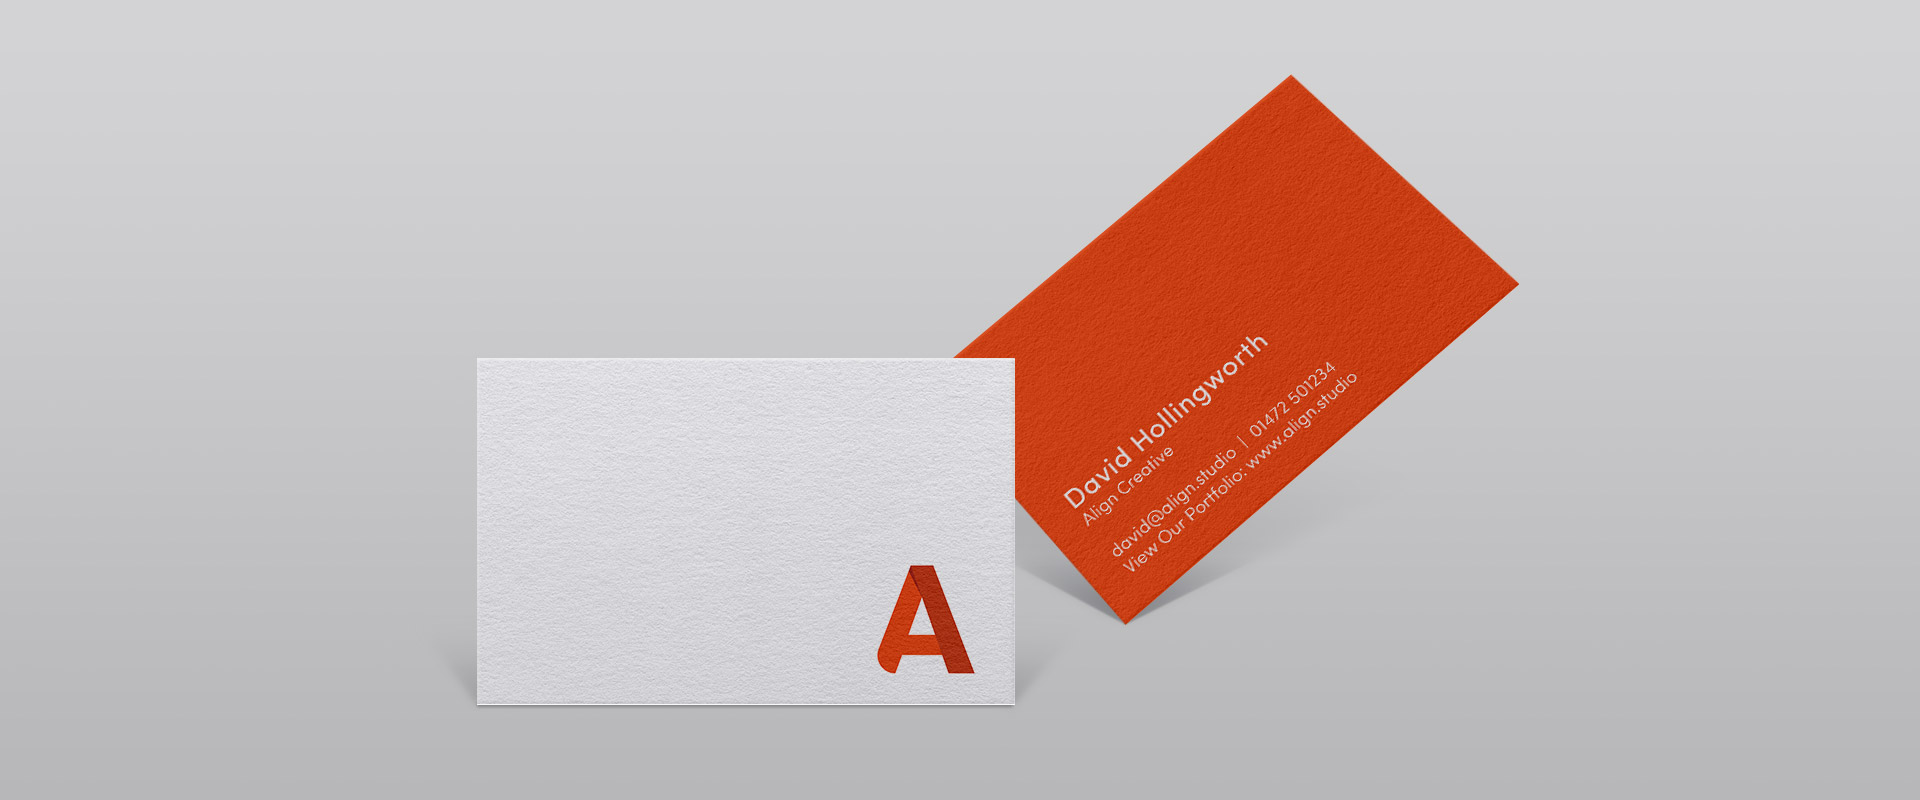 Free Business Cards for One Lucky Winner